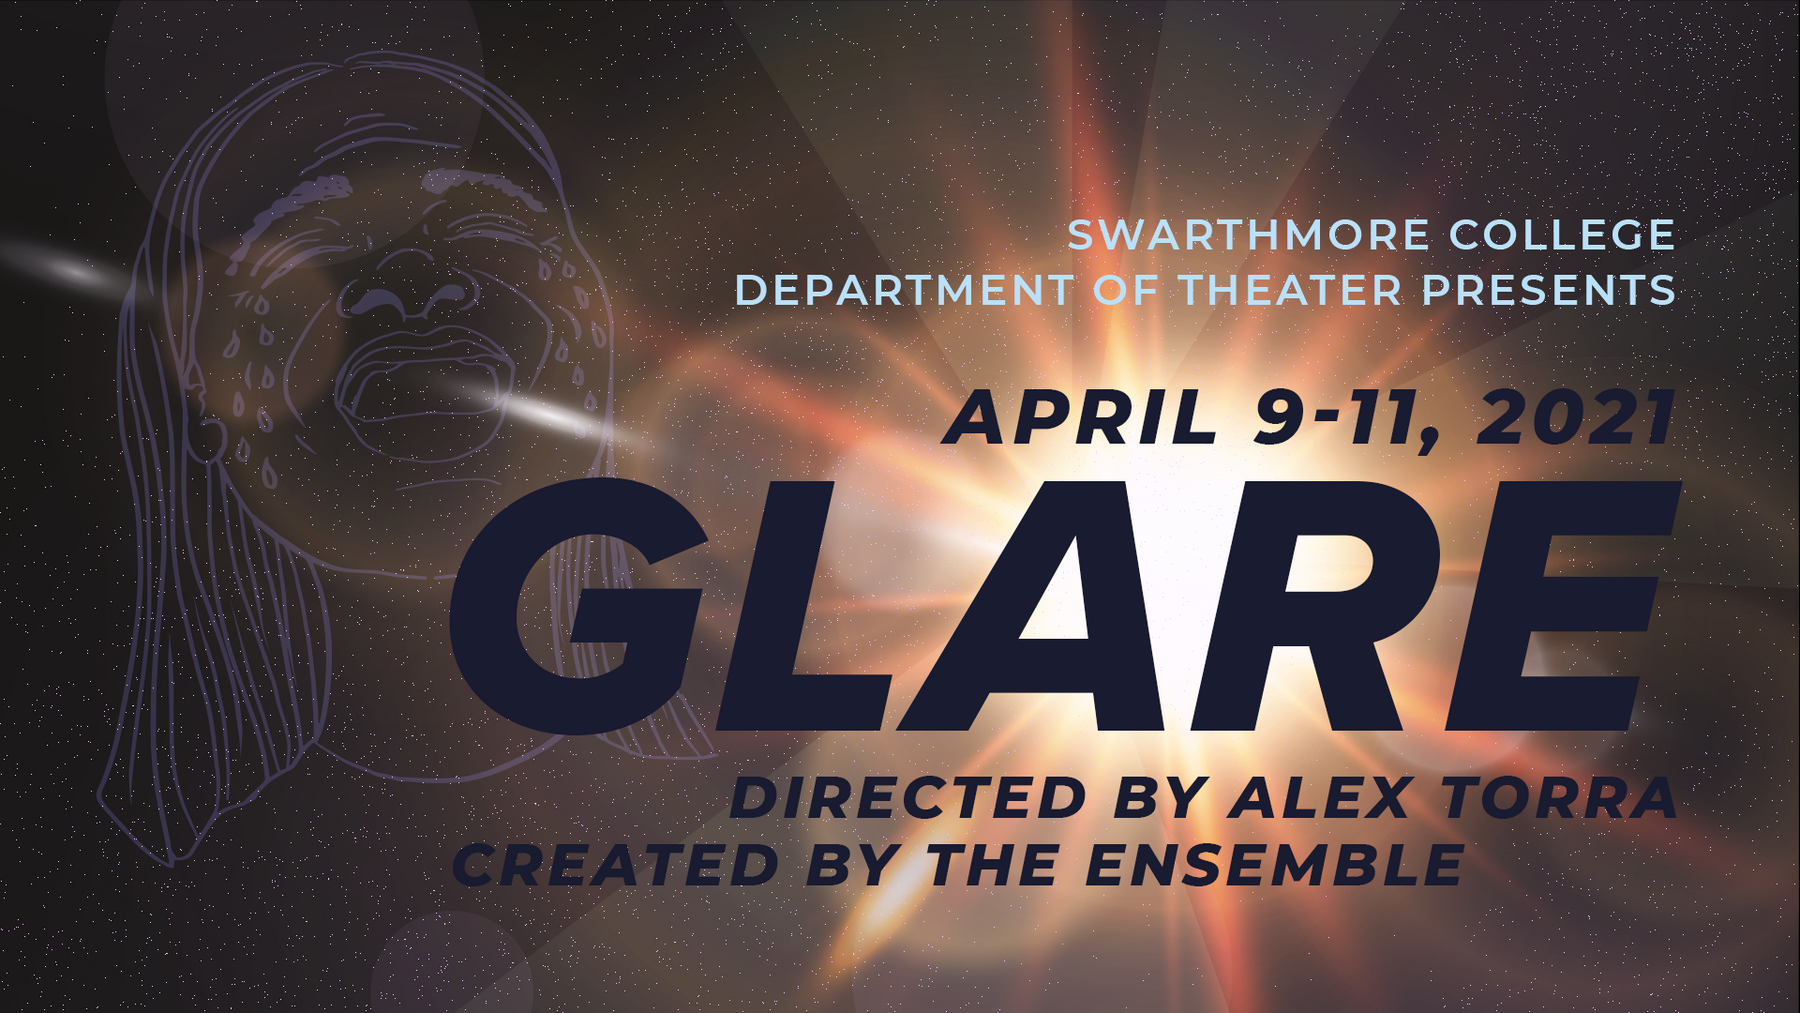 "Illustration of a crying person with long hair against a starry sky, partially obscured by a bright sun glare. Text reads ""Swarthmore College Department of Theater Presents GLARE Directed by Alex Torra, Created by the Ensemble April 9-11, 2021"""